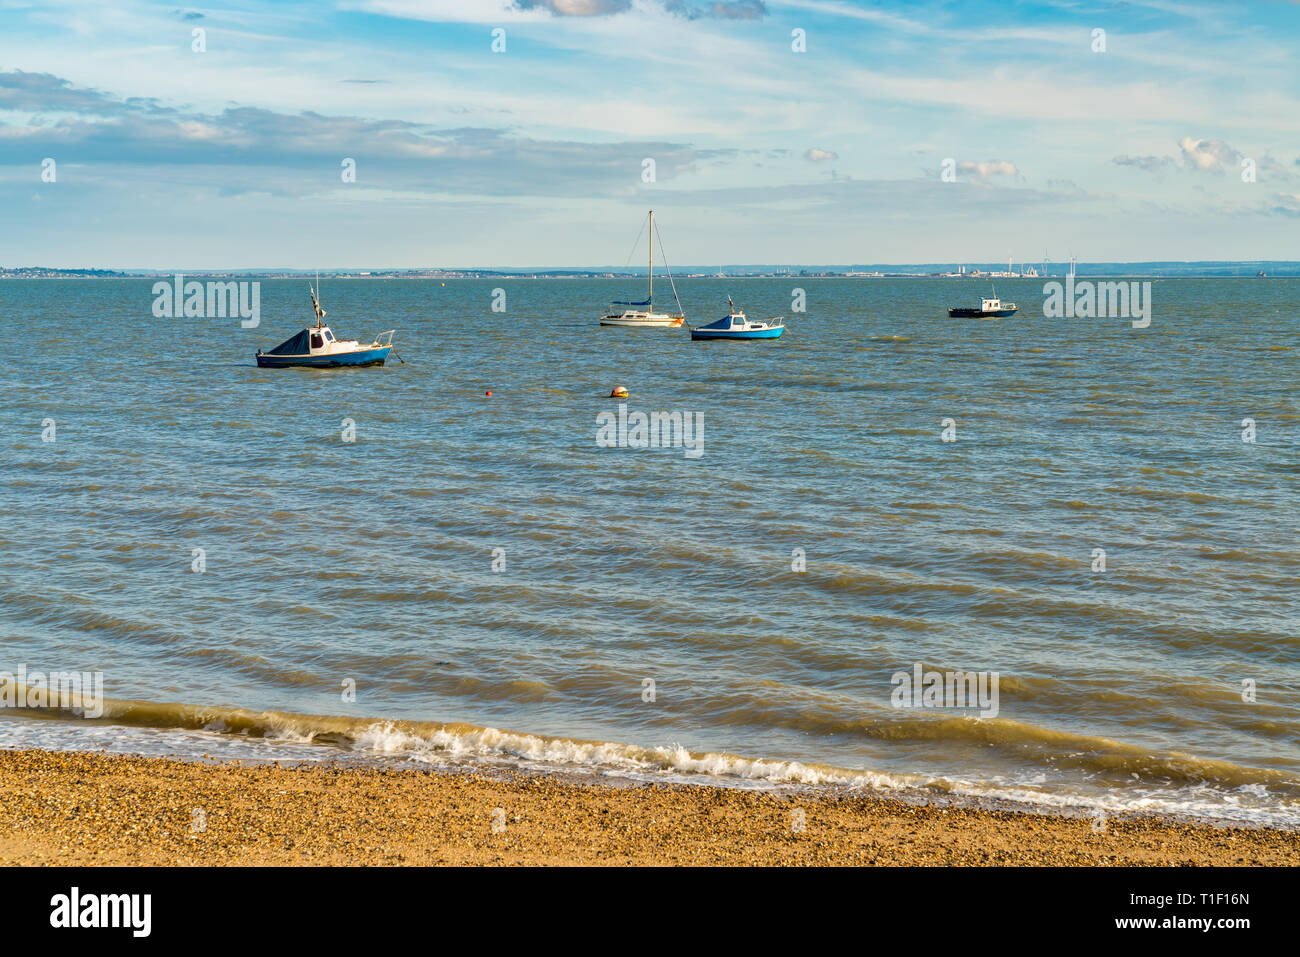 Boats on the shore of the River Thames, seen in Southend-on-Sea, Essex, England, UK - Stock Image